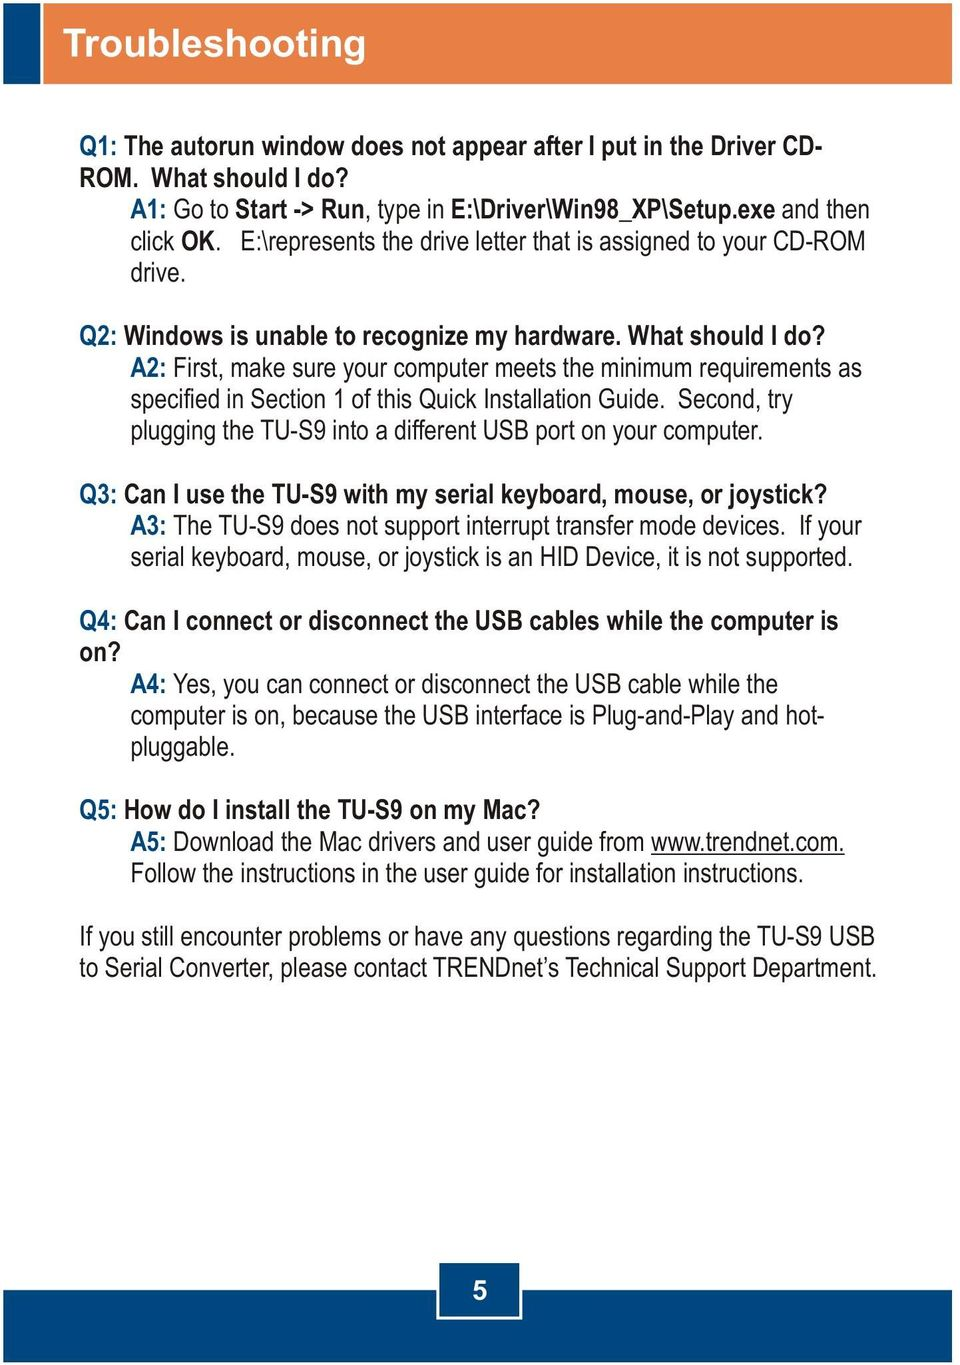 A2: First, make sure your computer meets the minimum requirements as specified in Section 1 of this Quick Installation Guide. Second, try plugging the TU-S9 into a different USB port on your computer.